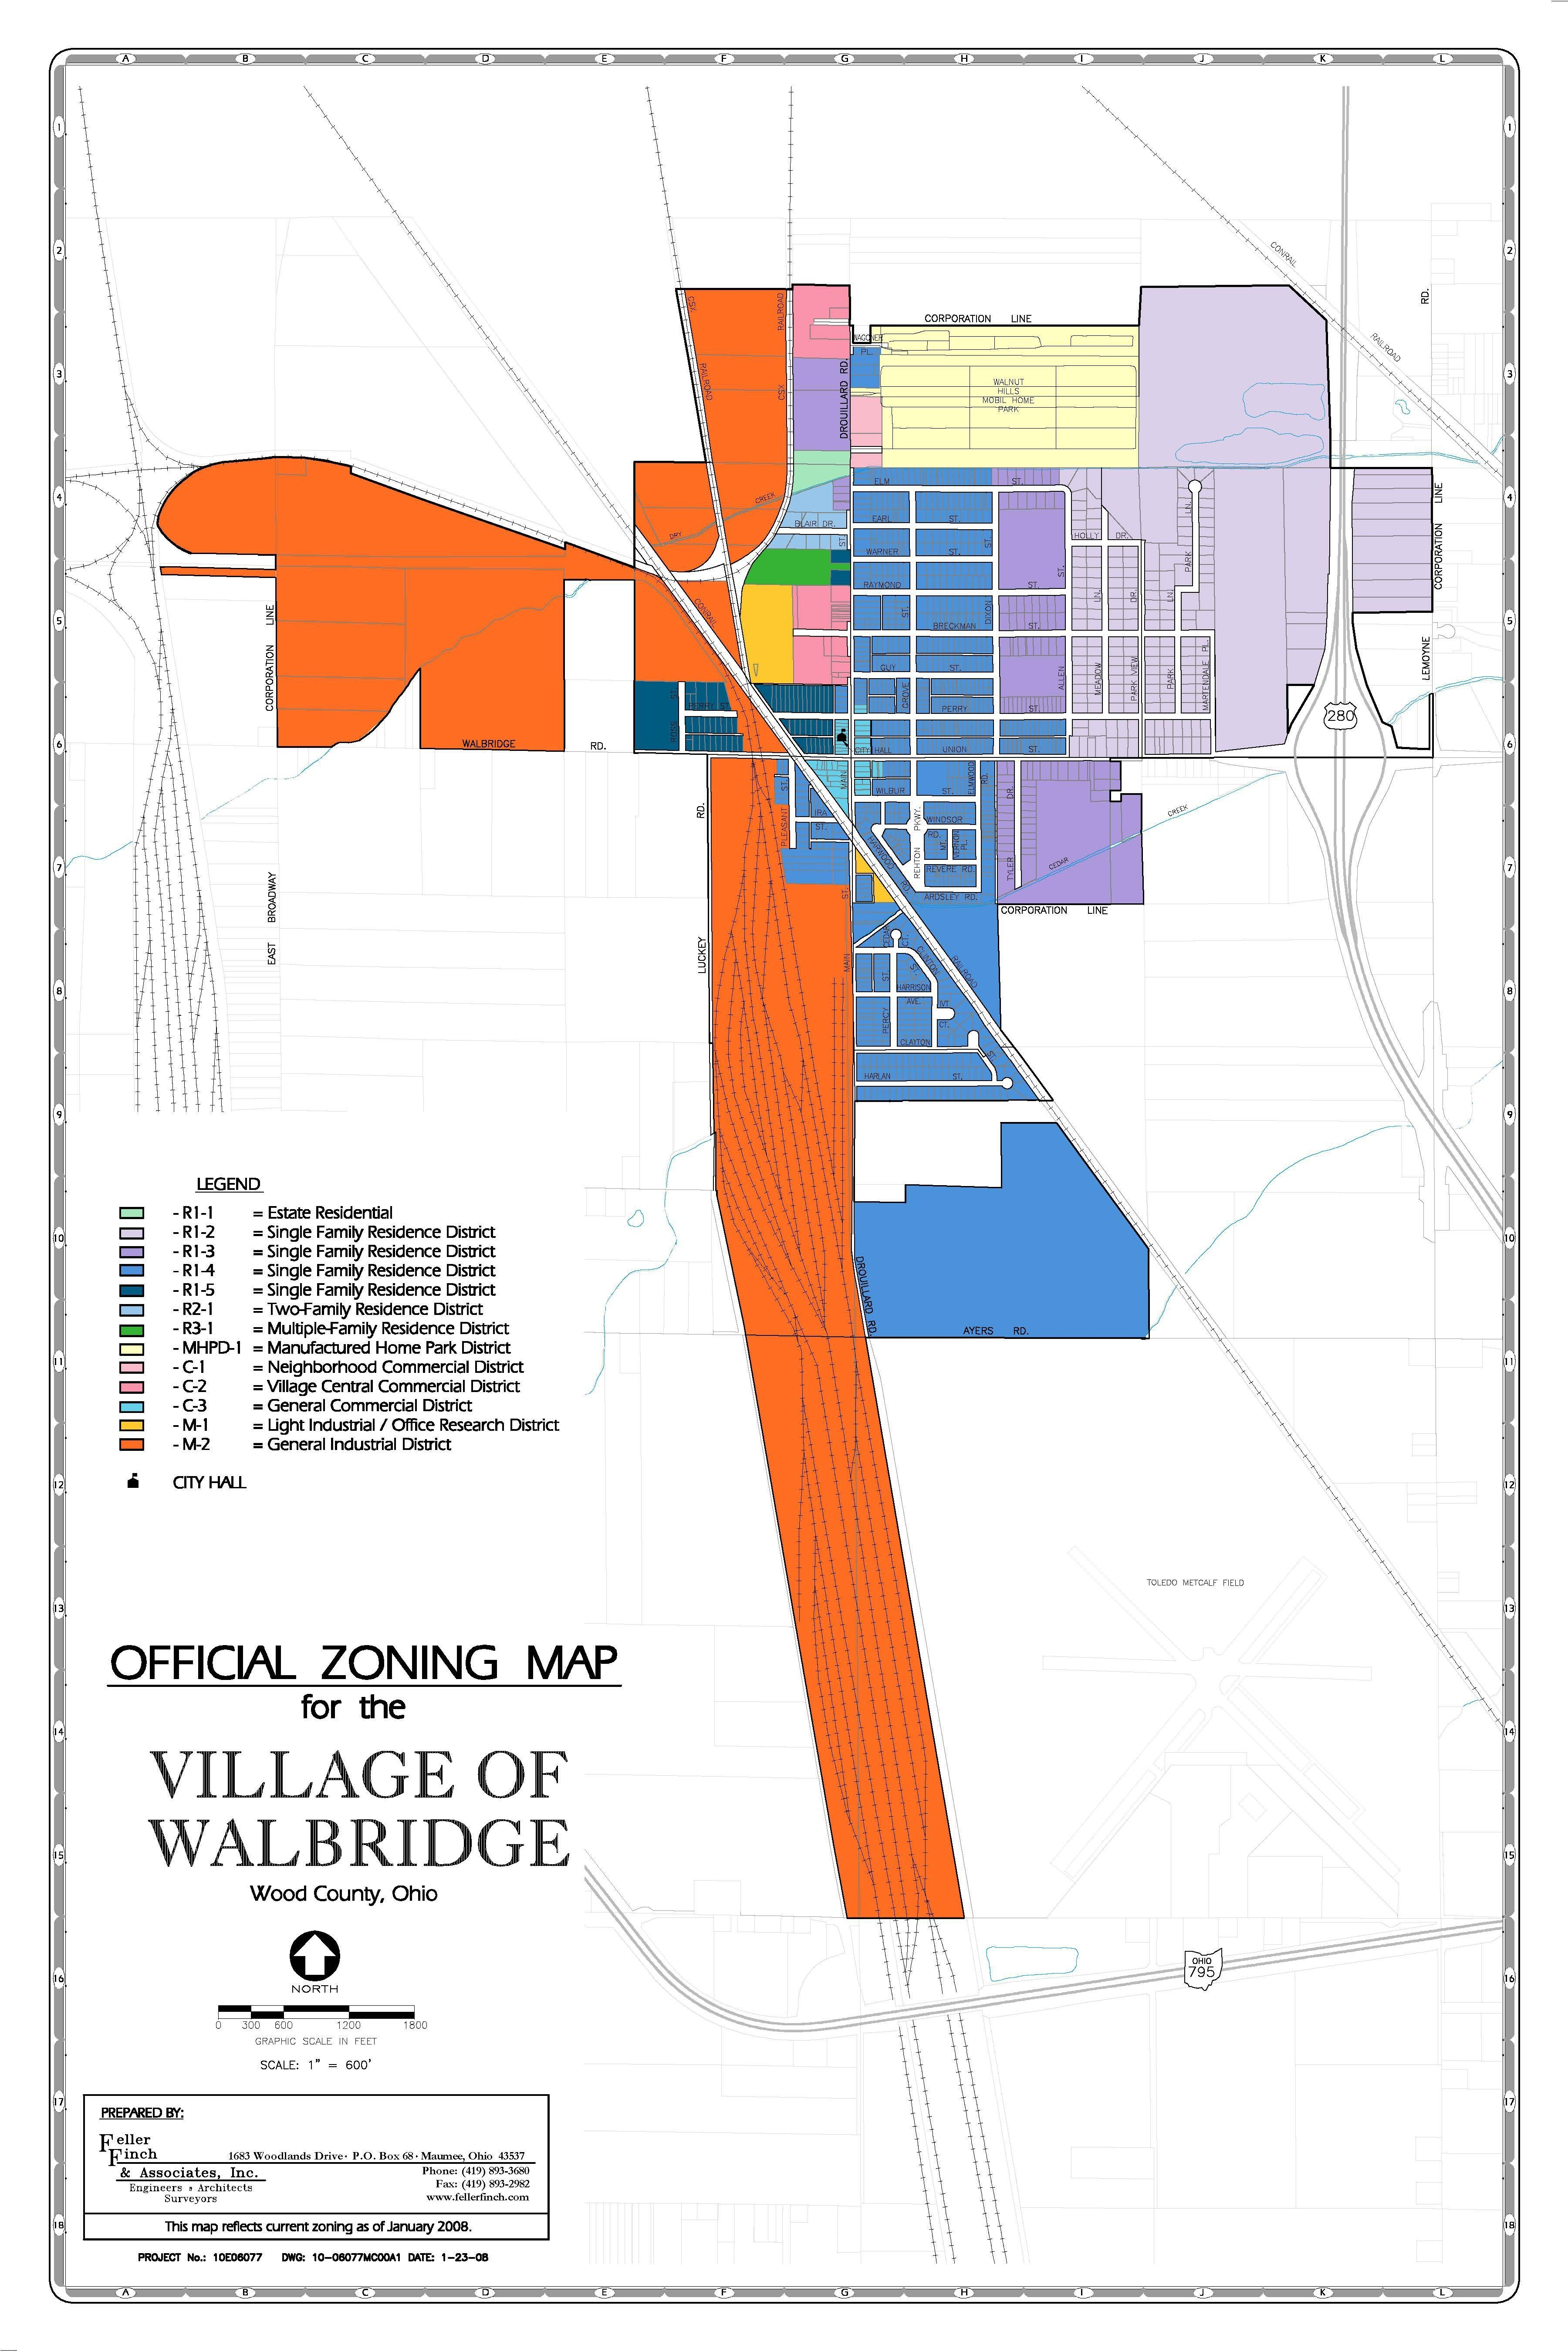 Official Zoning Map Village of Walbridge, Ohio